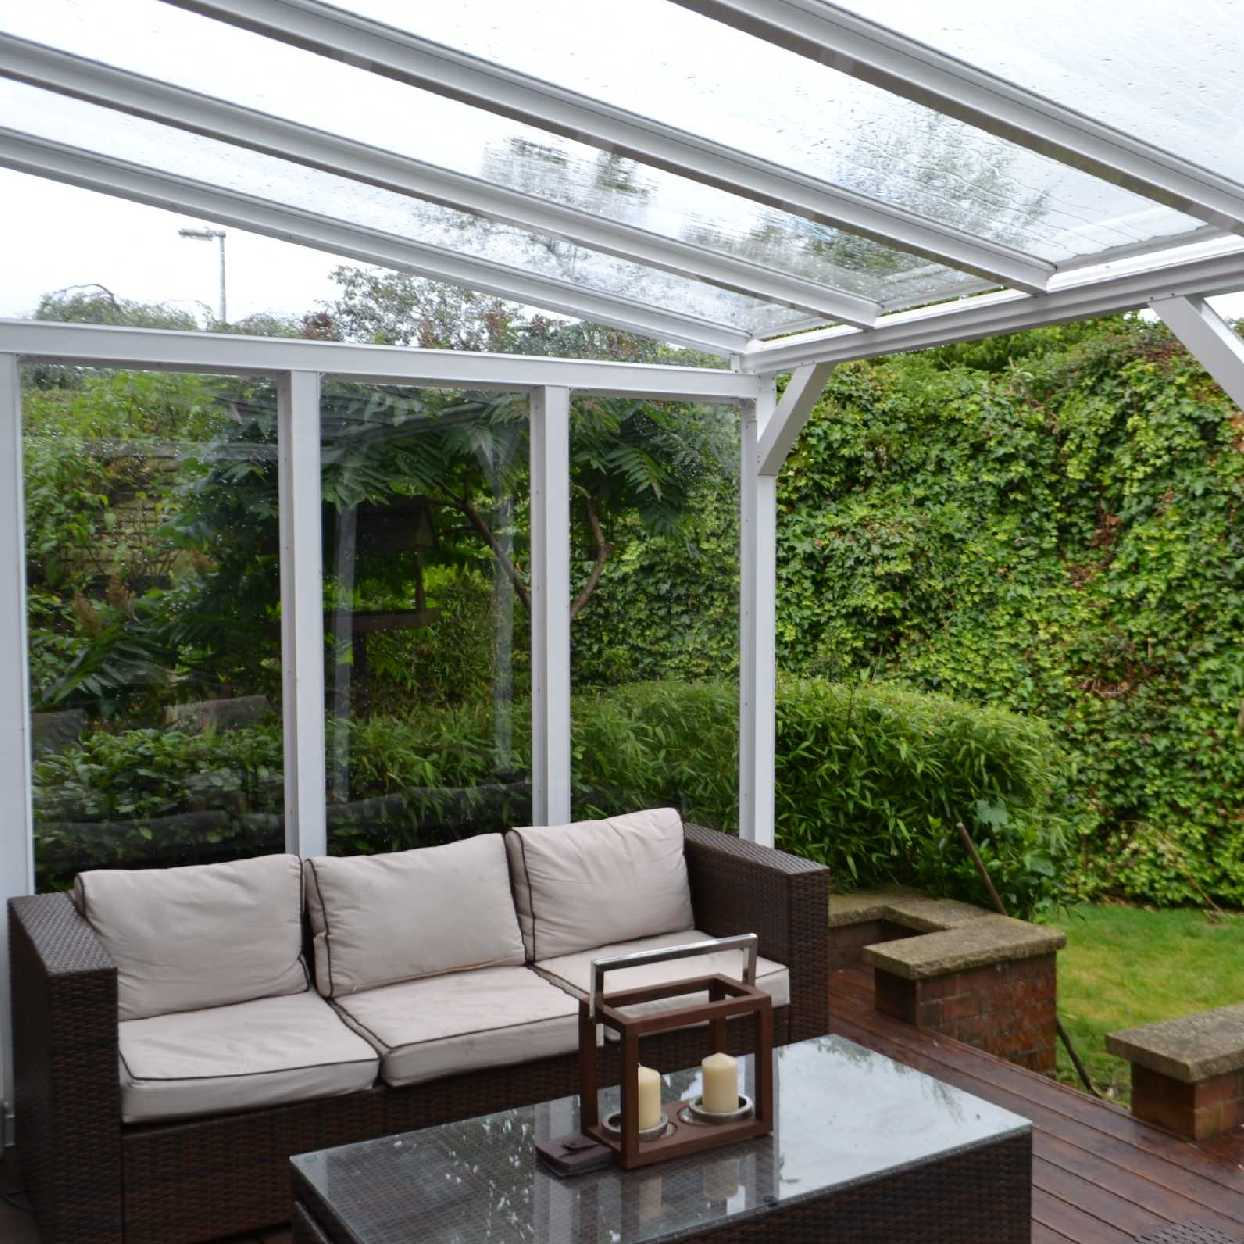 Great selection of Omega Smart White Lean-To Canopy with 16mm Polycarbonate Glazing - 4.9m (W) x 3.5m (P), (3) Supporting Posts